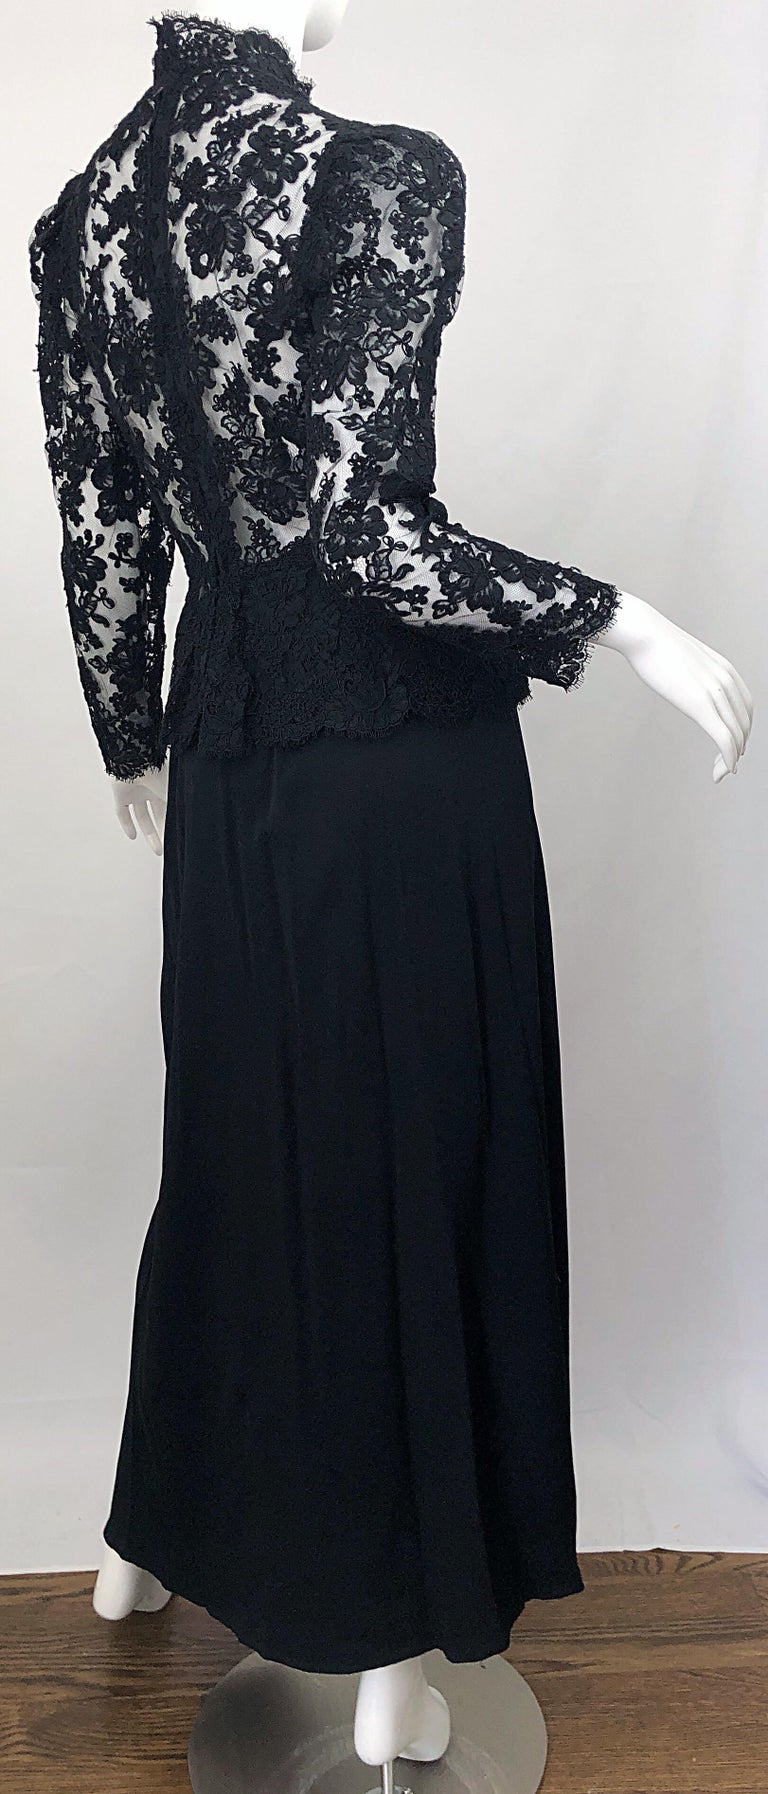 Vintage Vicky Tiel Couture 1980s Black Lace Victorian Top + Asymmetrical Skirt For Sale 4